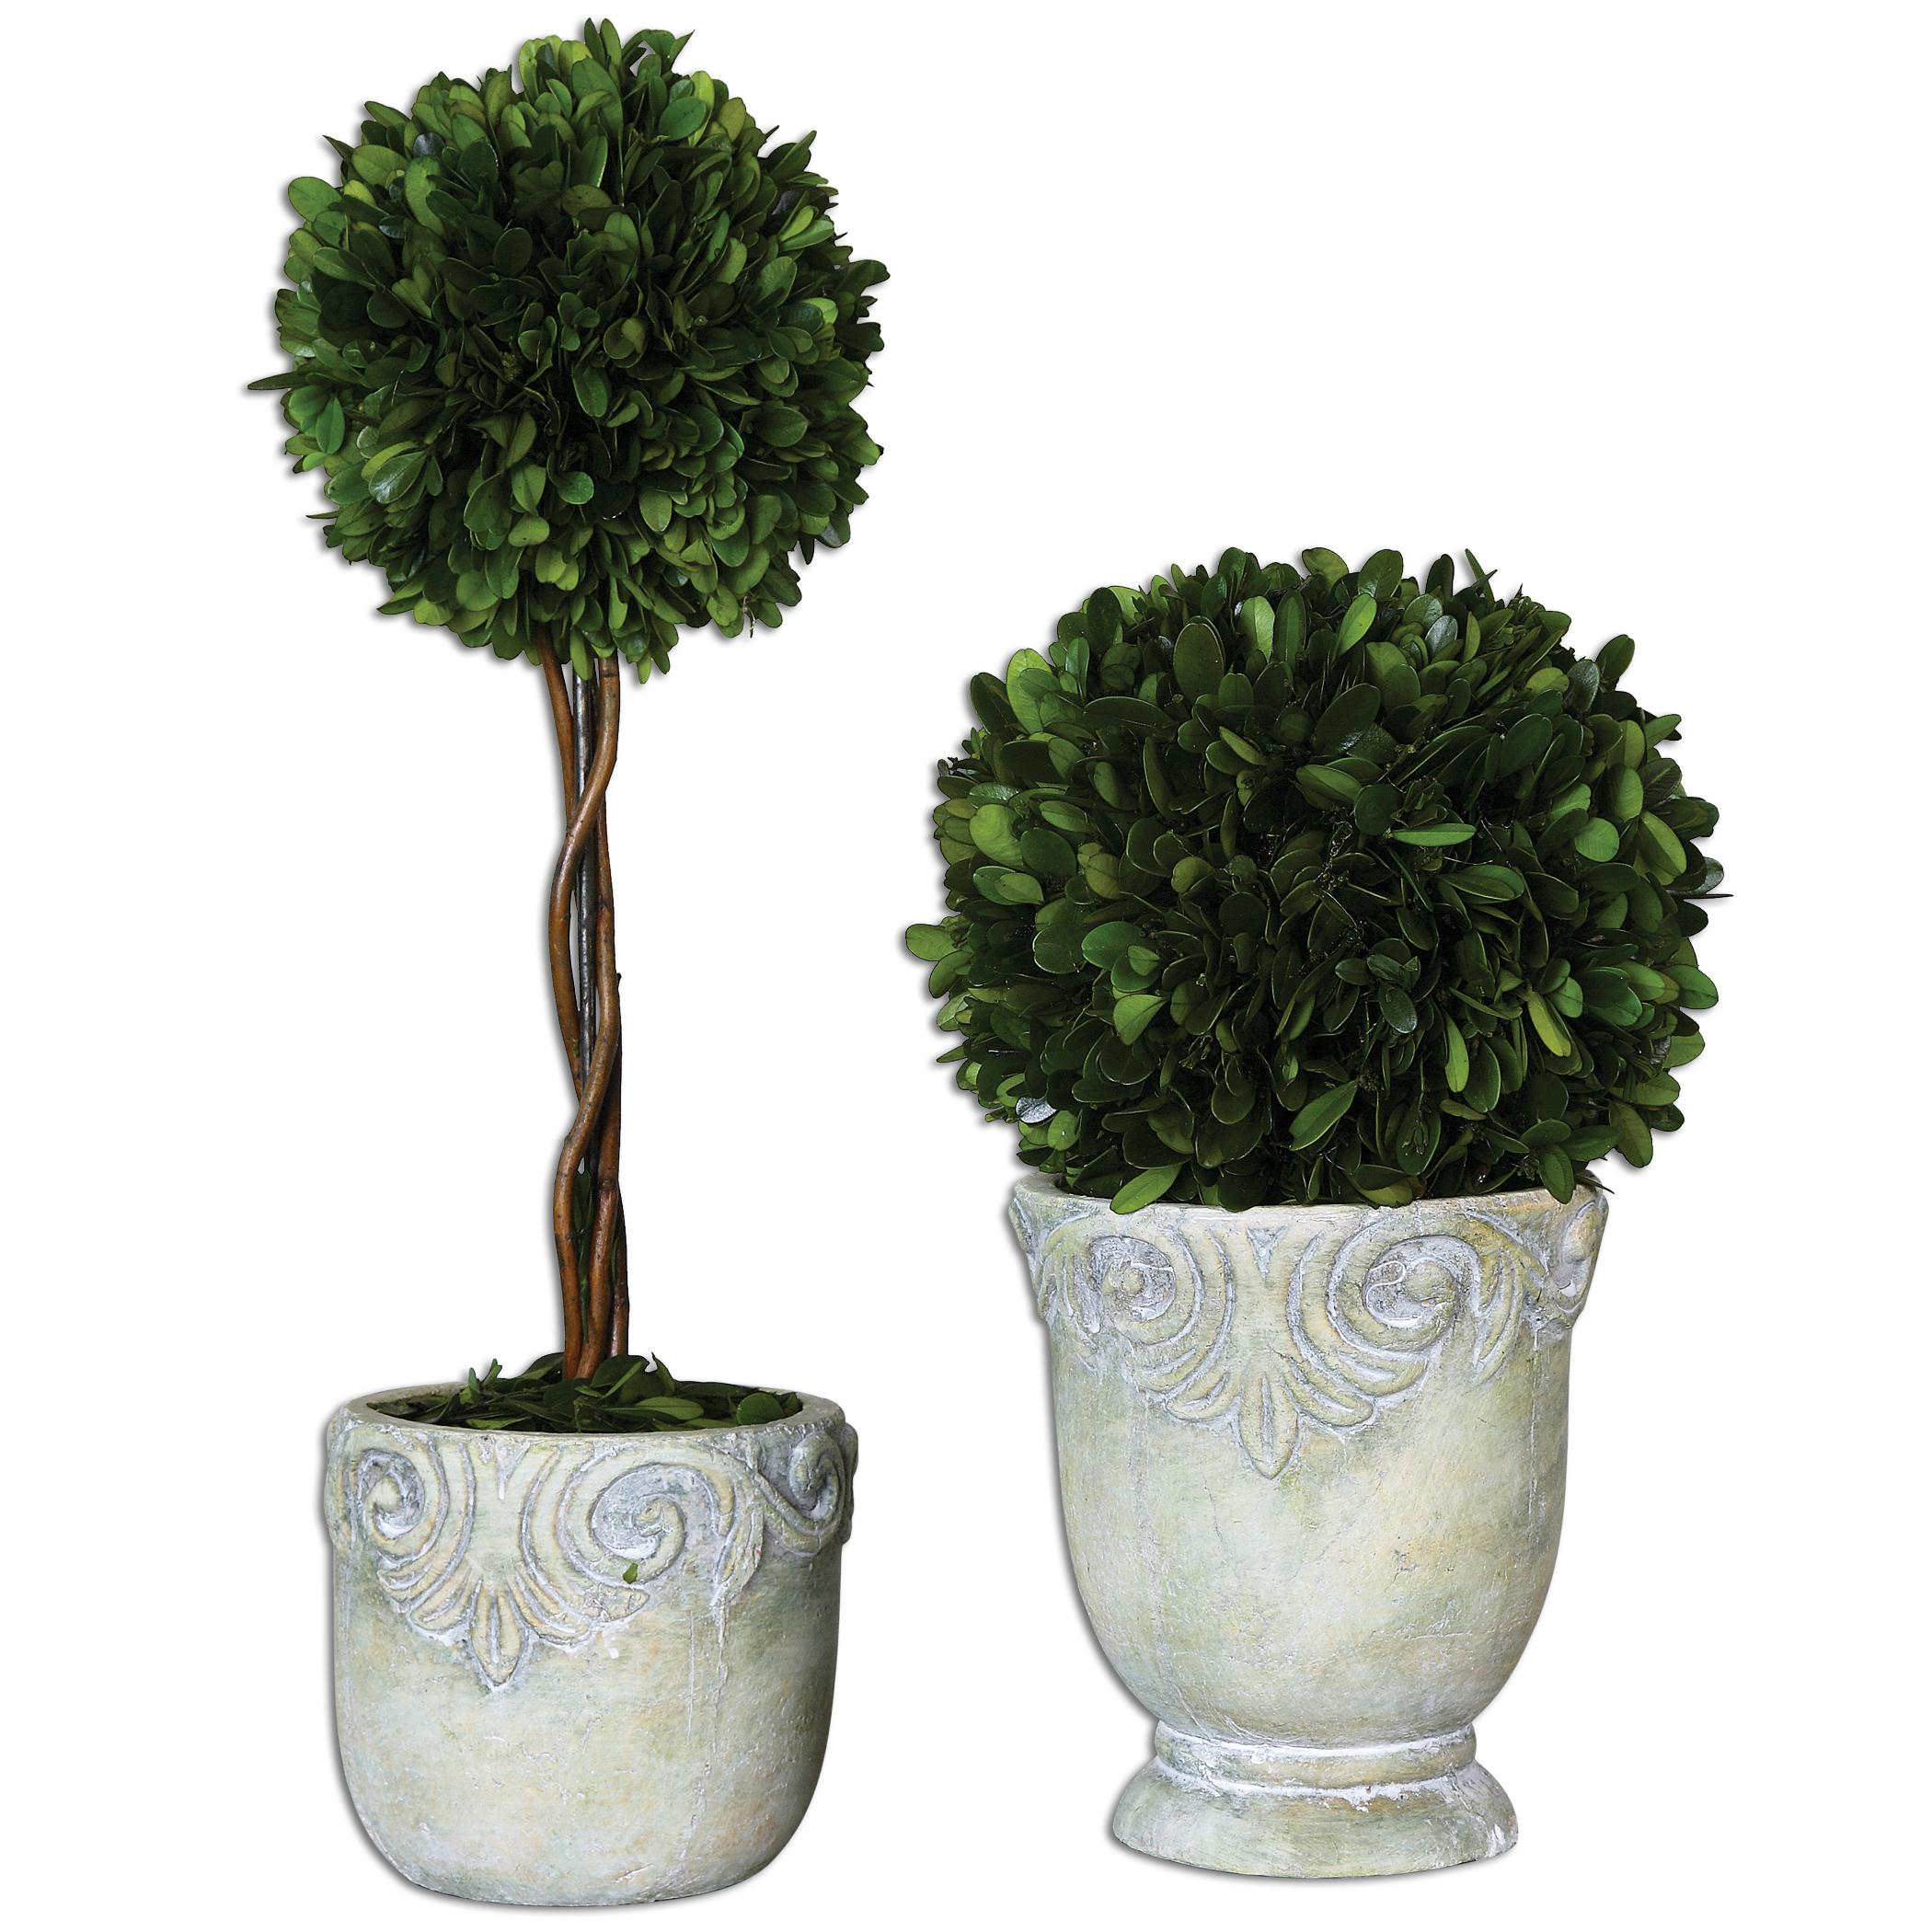 Uttermost Botanicals Preserved Boxwood Ball Topiaries S - Item Number: 60112